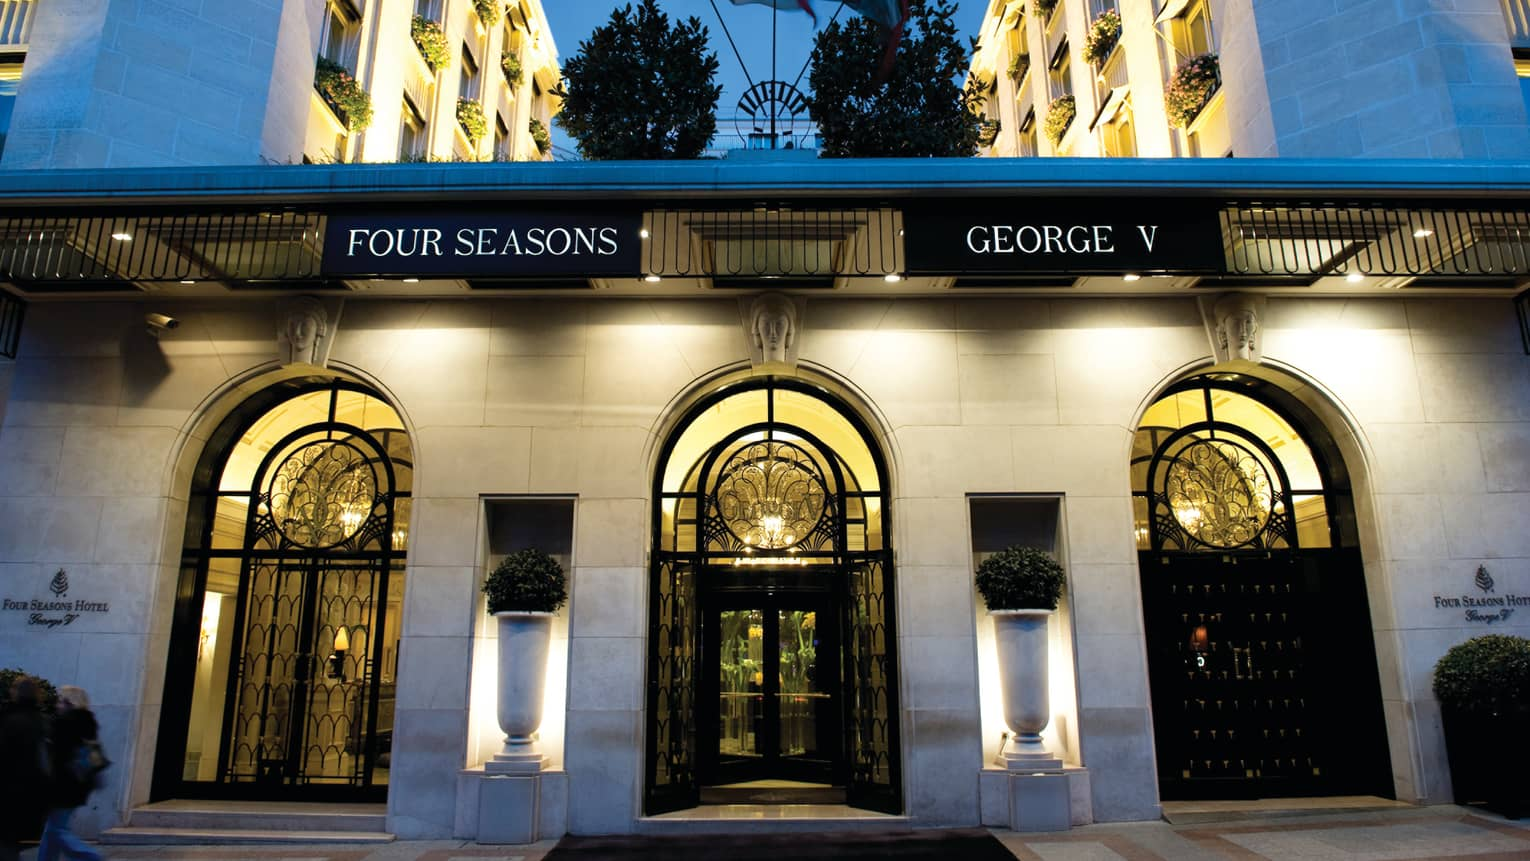 Four Seasons George V entrance with arched glass, iron doors